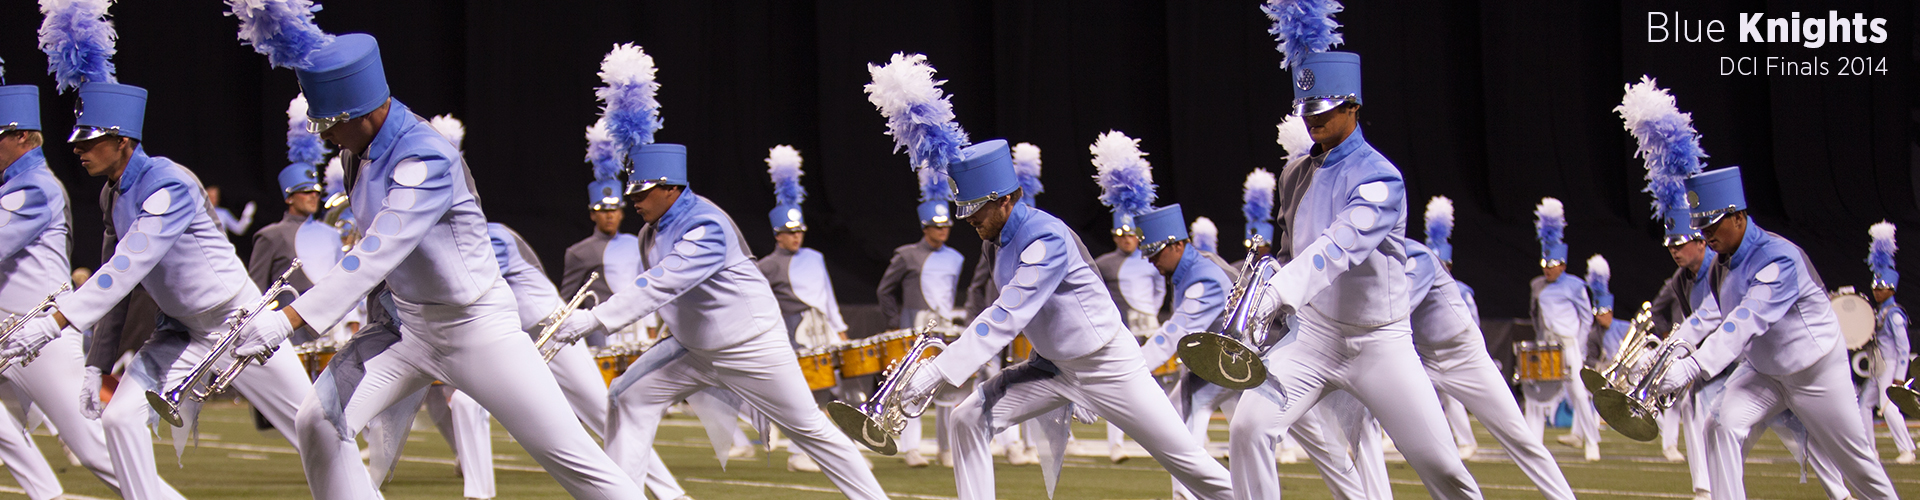 Blue Knights DCI 2014